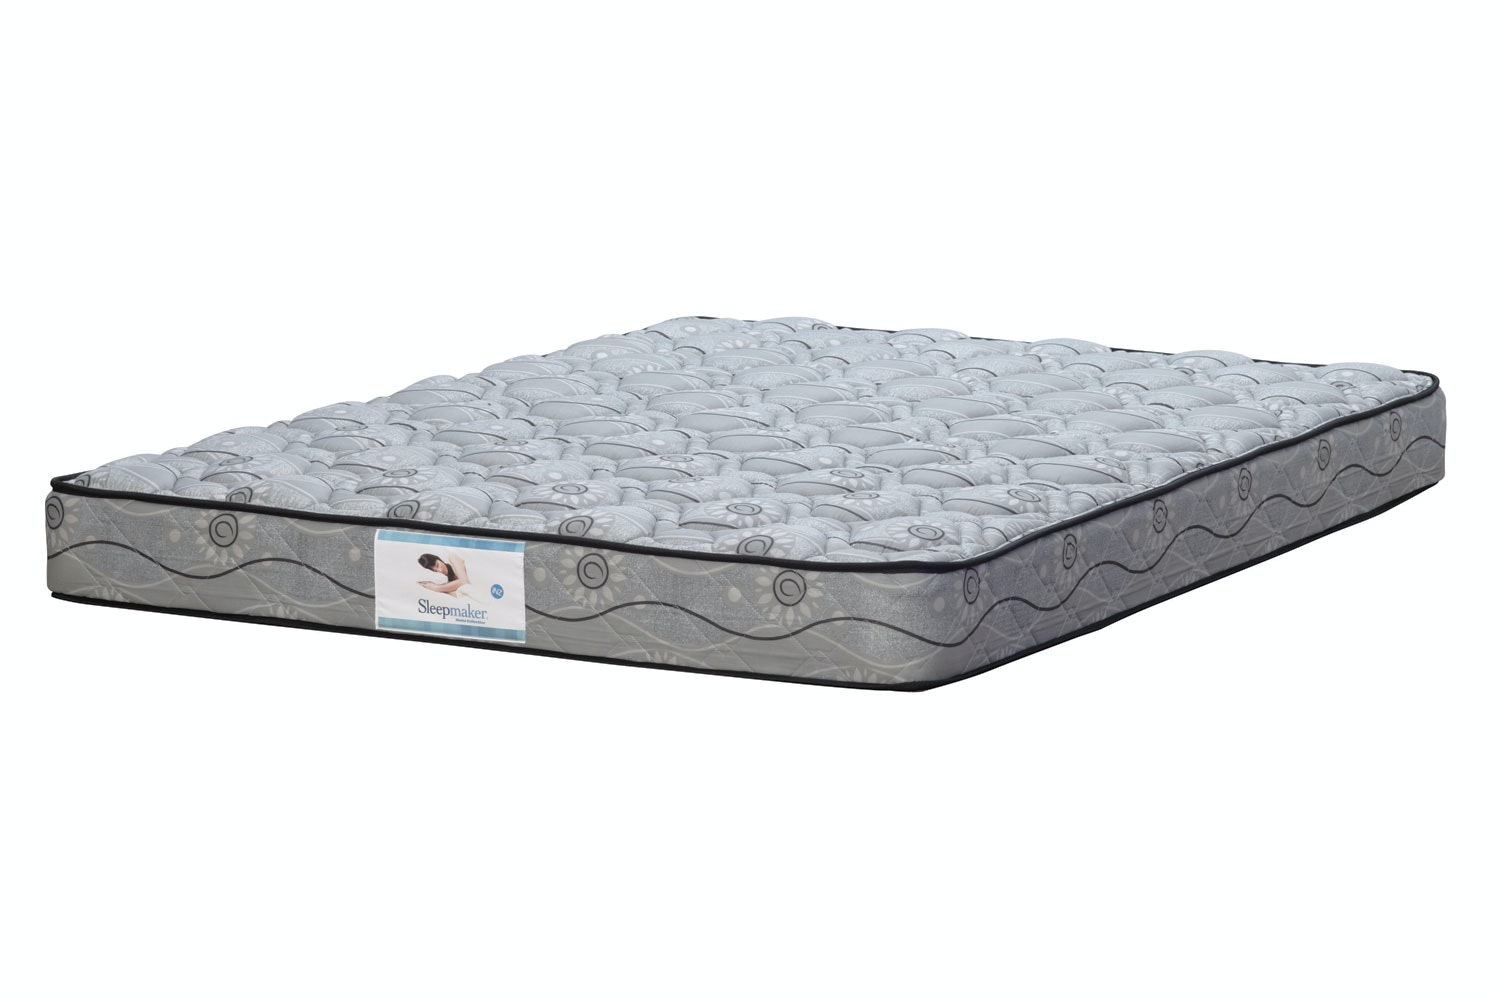 Slumber Support Mattress by Dunlop